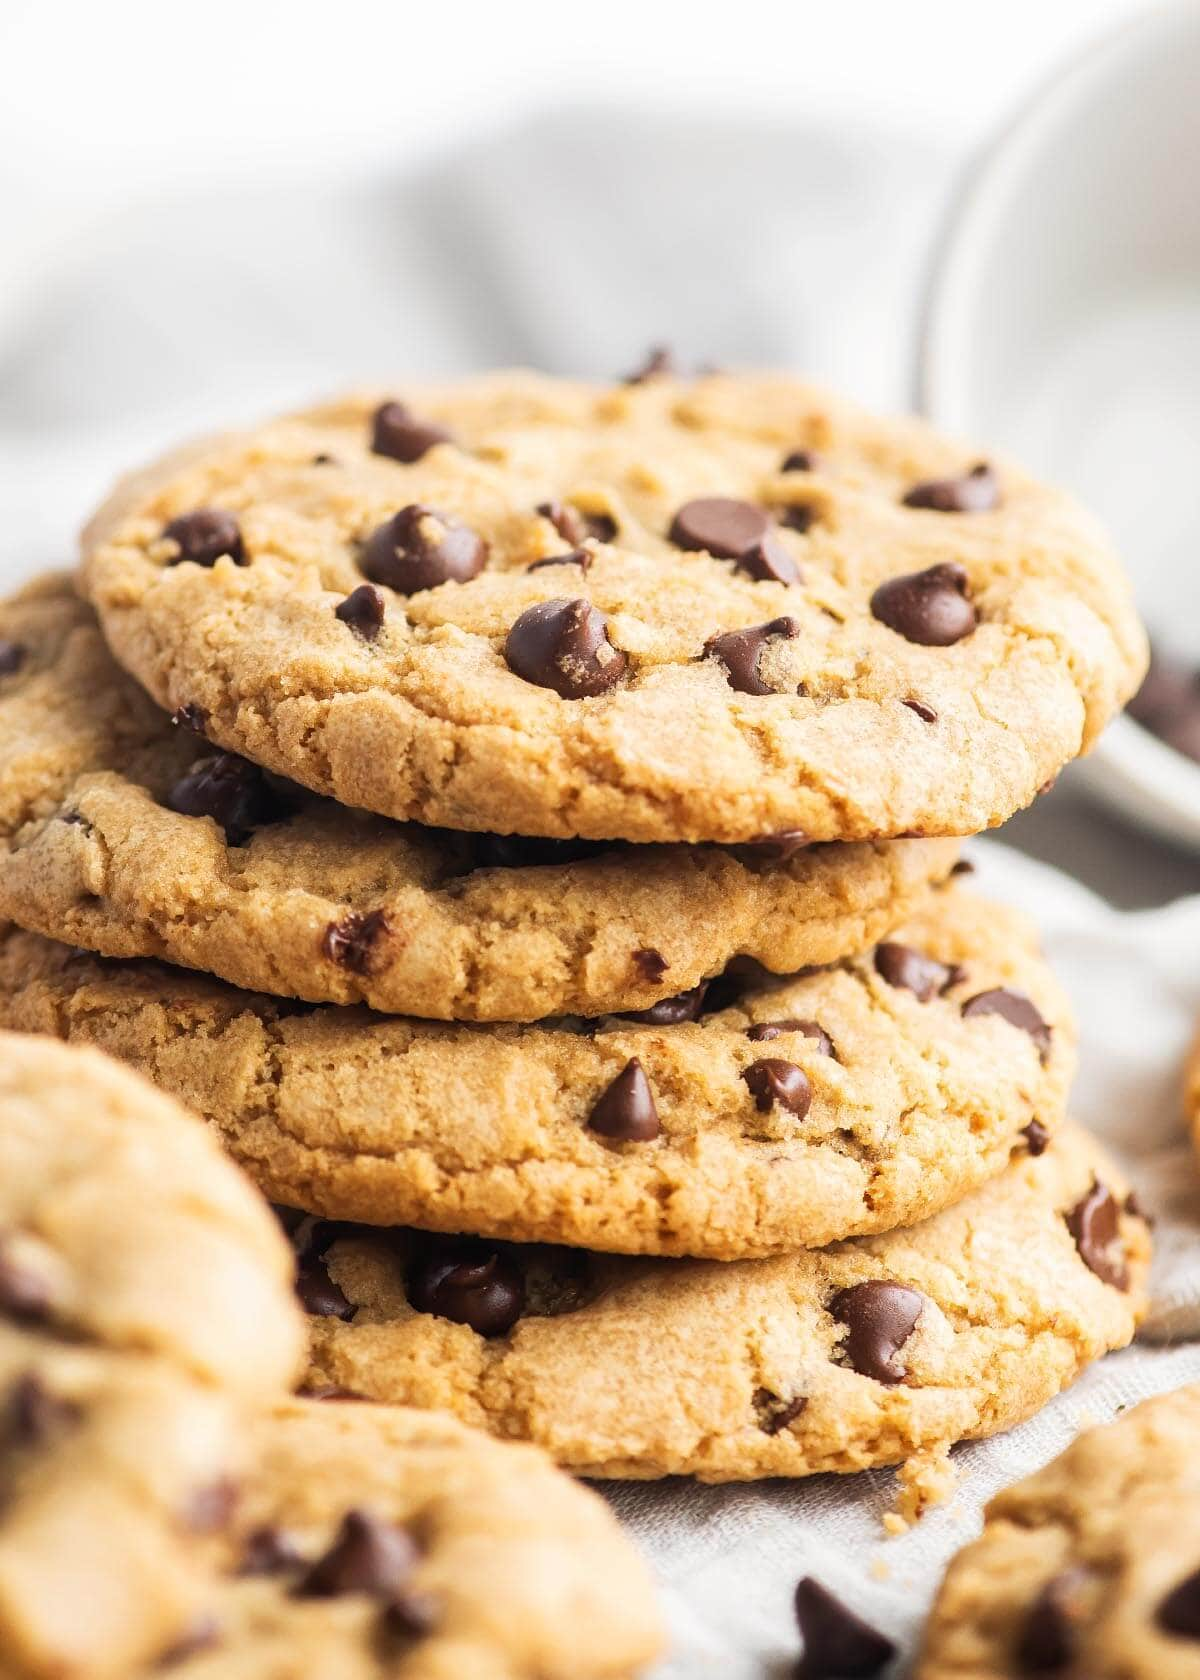 Chocolate Chip Cookies in a stack on a white cloth